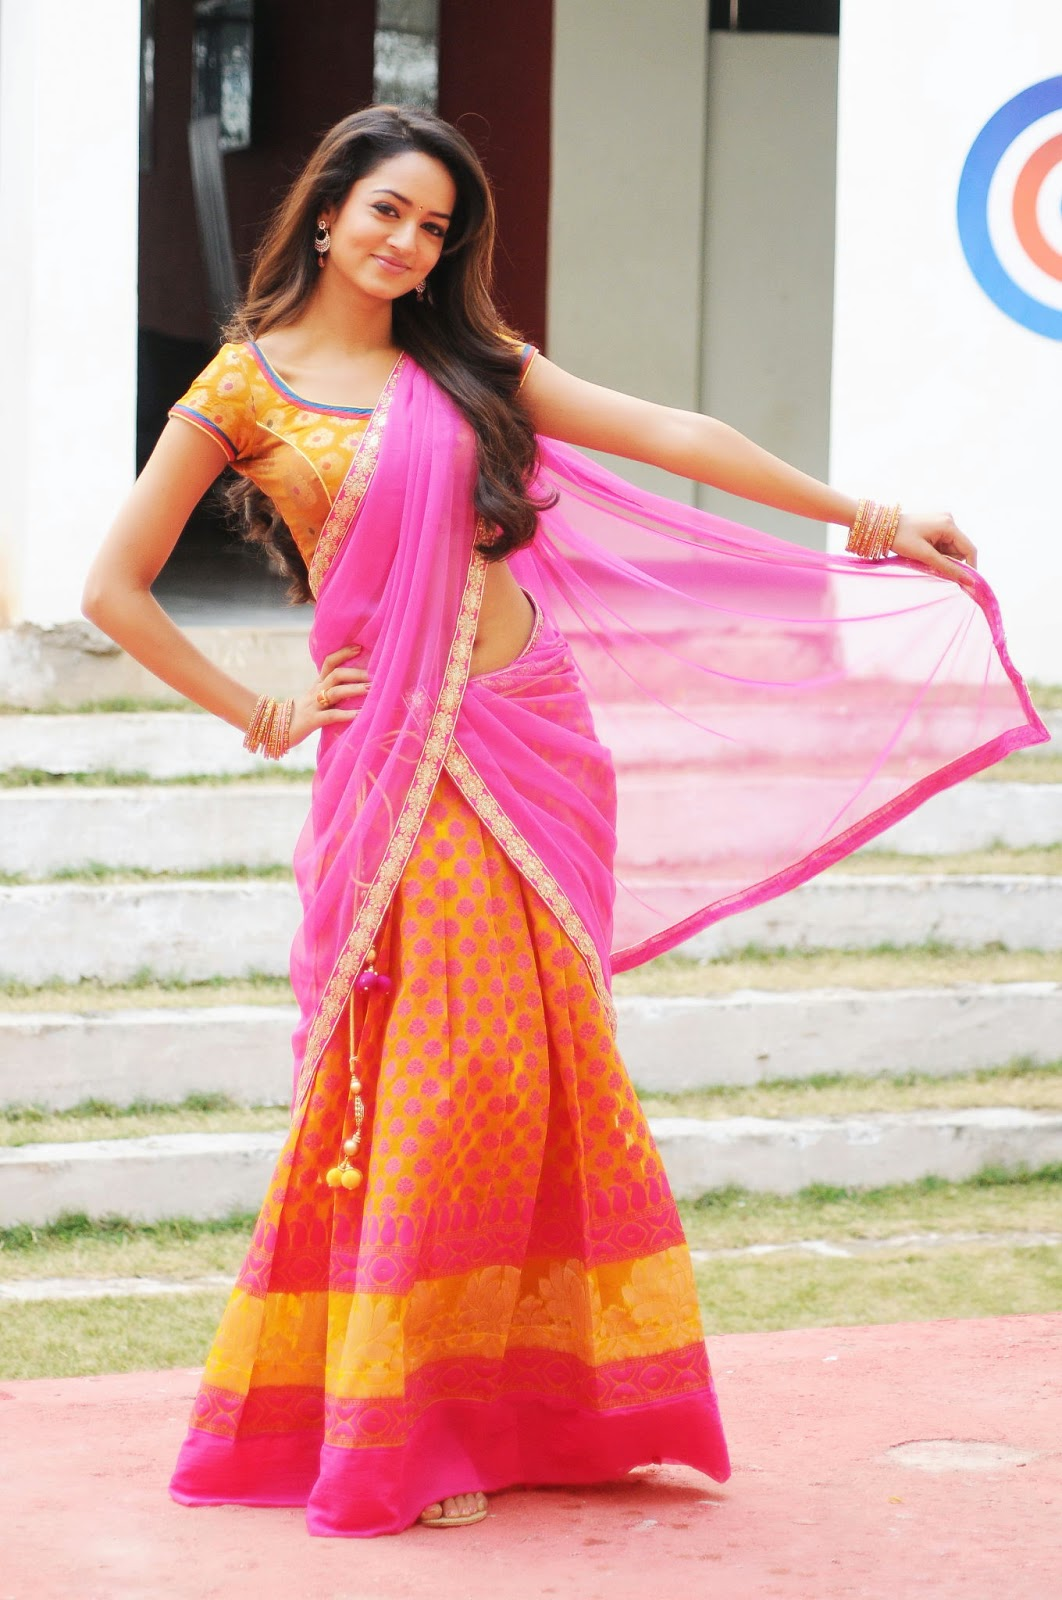 shanvi in traditional half saree